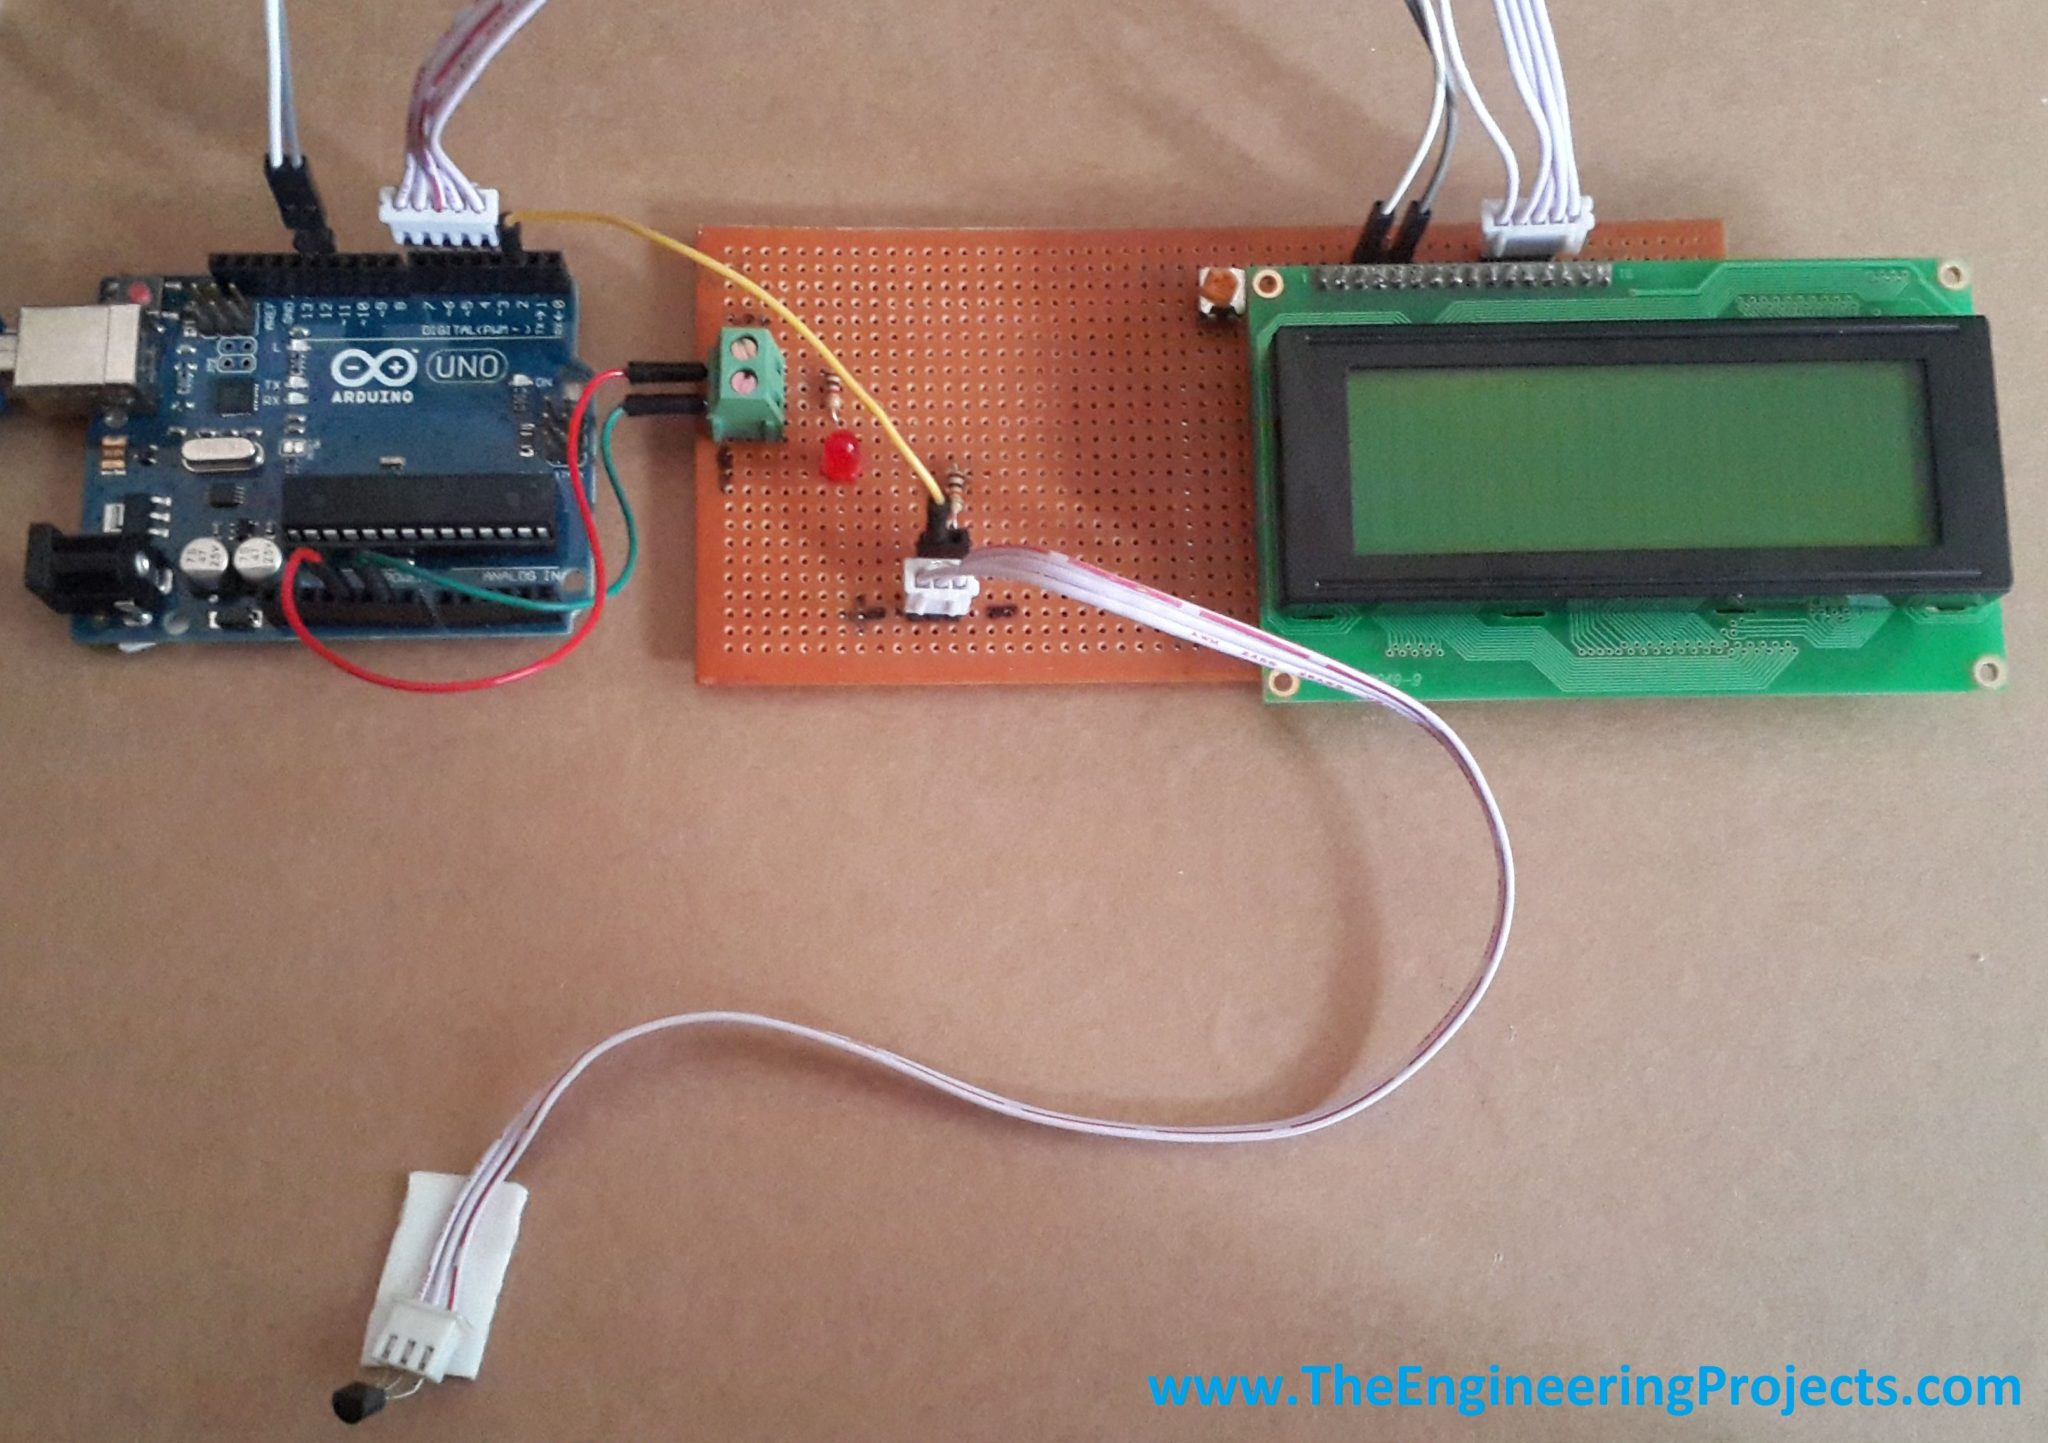 18B20 with arduino,18b20 arduino code, 18b20 arduino library, temperture sensor with arduino, dallas 18b20 arduino